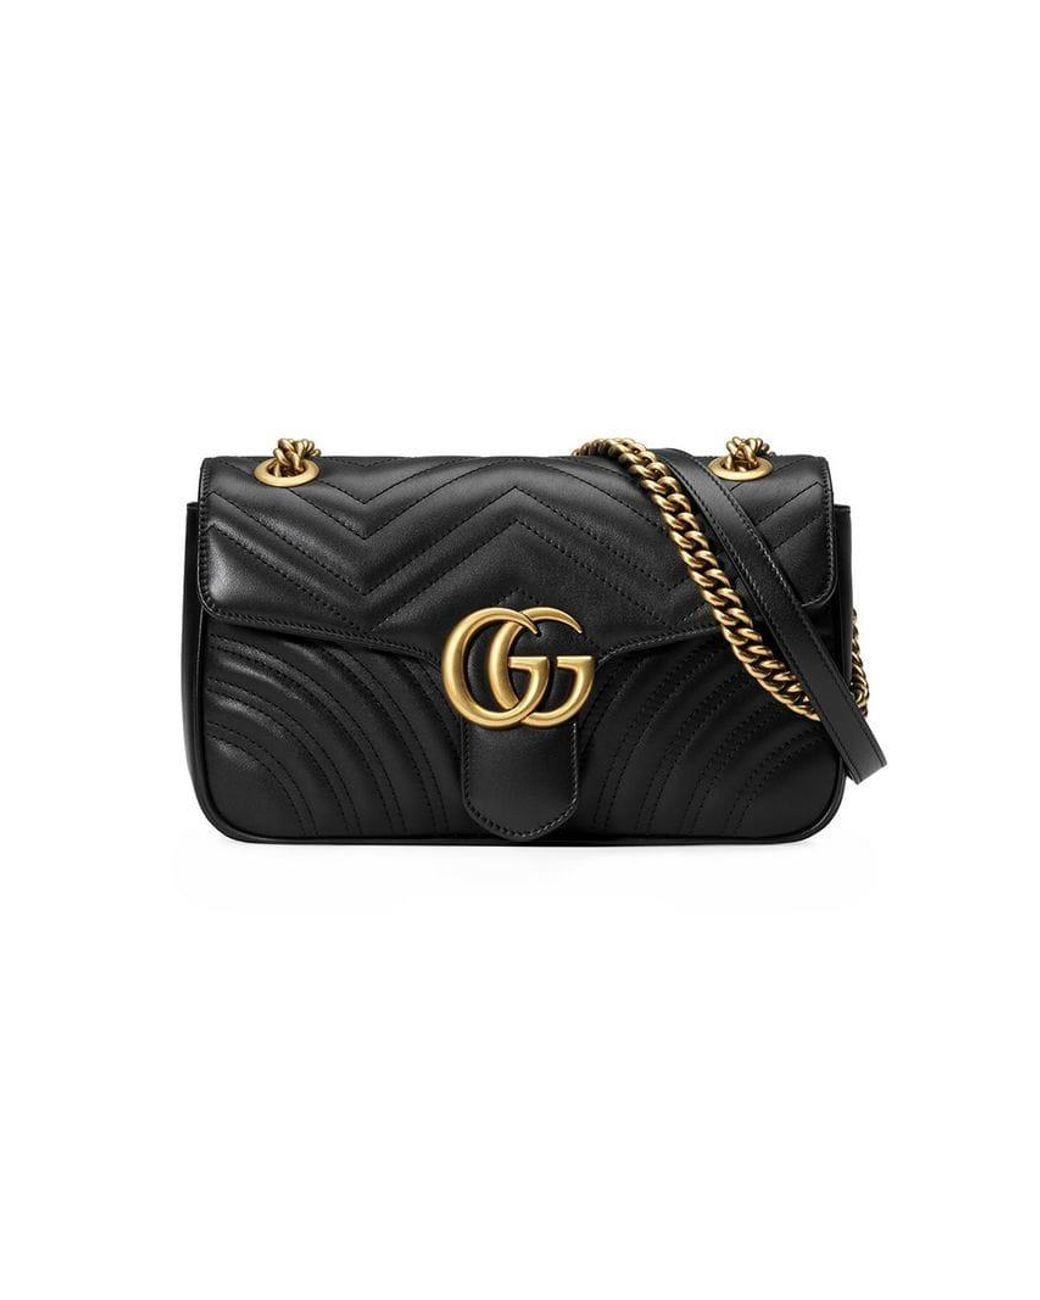 dce4c14340a Gucci Women s Black GG Marmont Medium Leather Shoulder Bag in Black ...